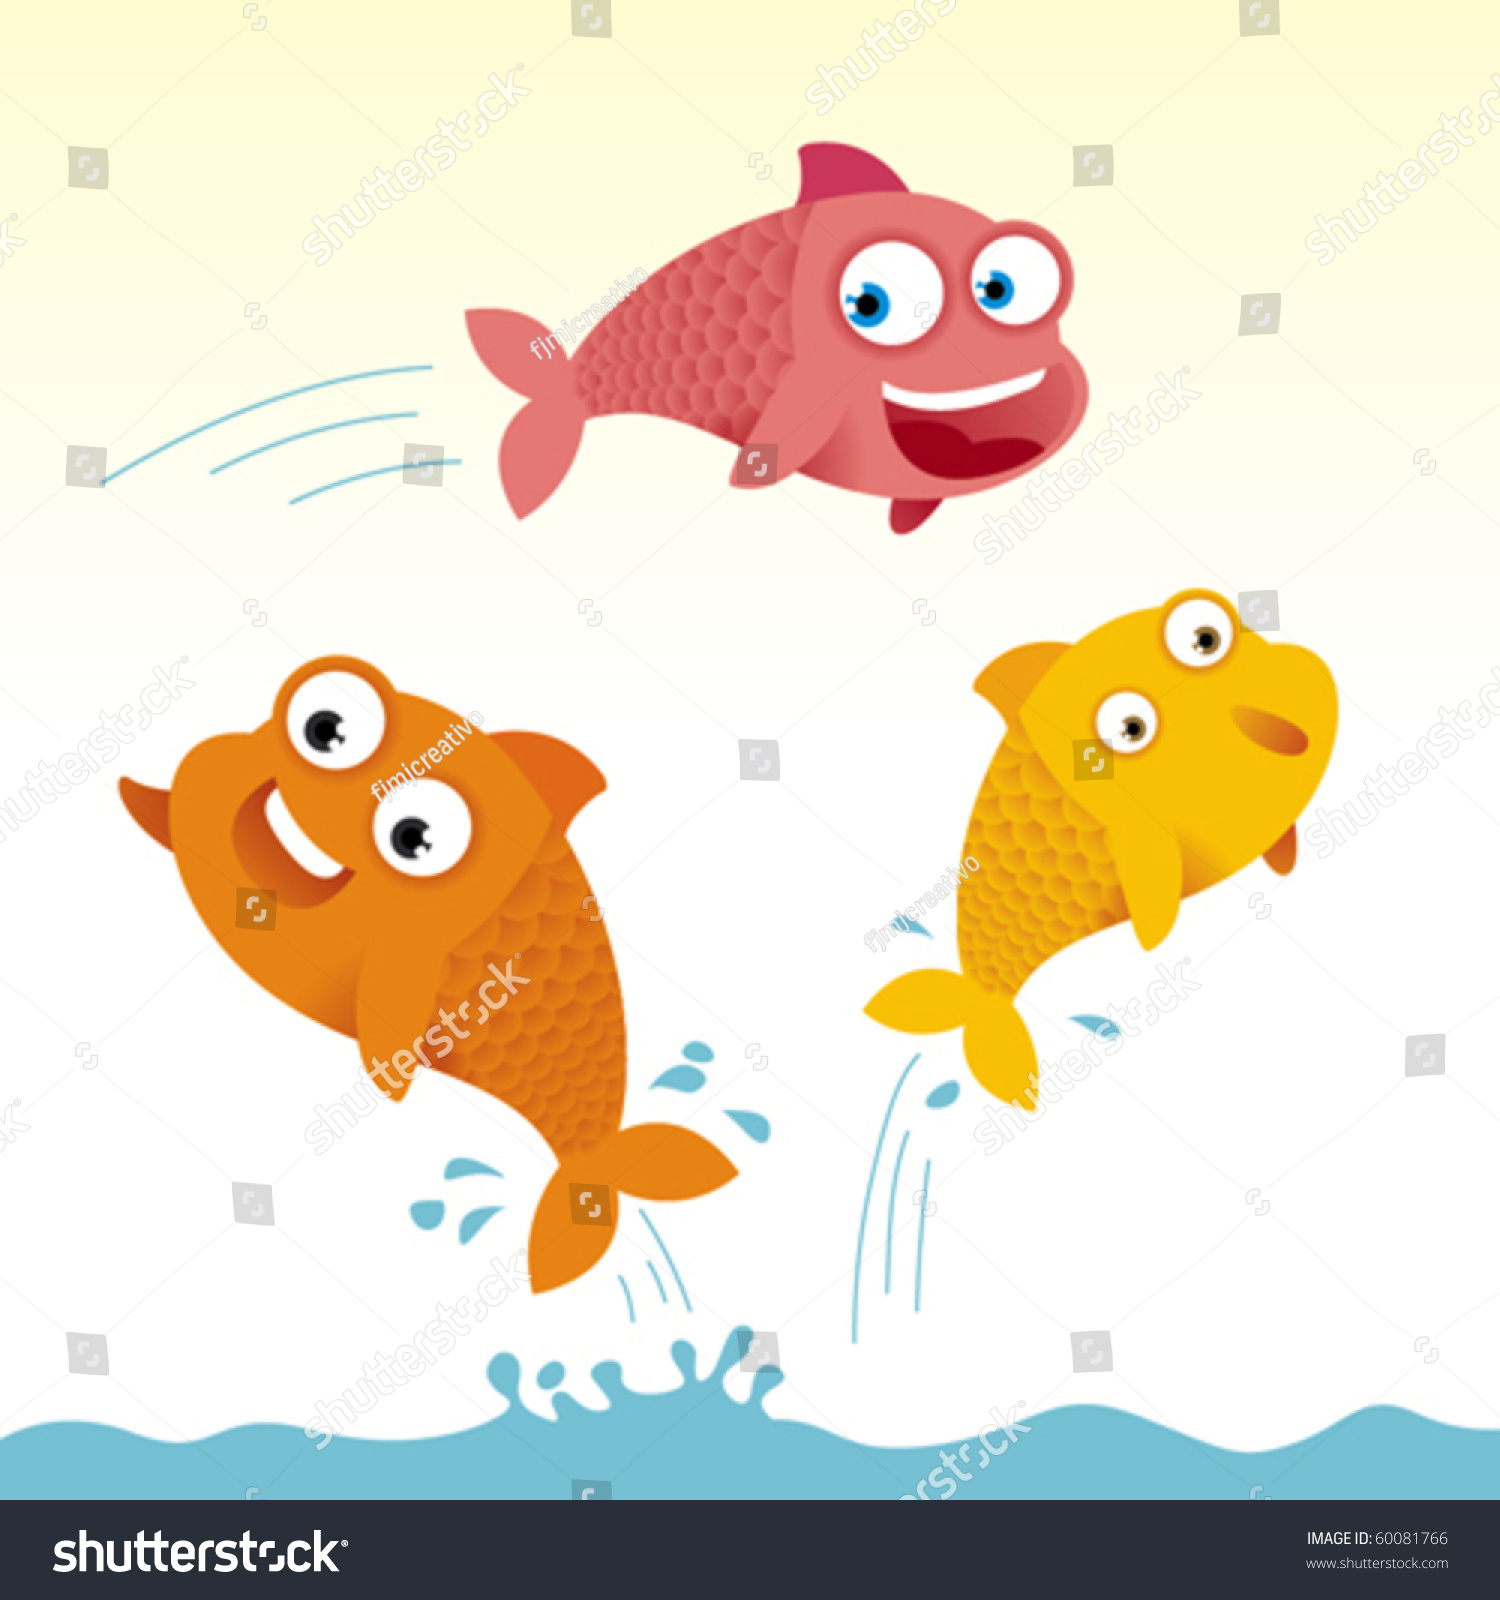 Cartoon fish jumping out of water clipart - photo#23